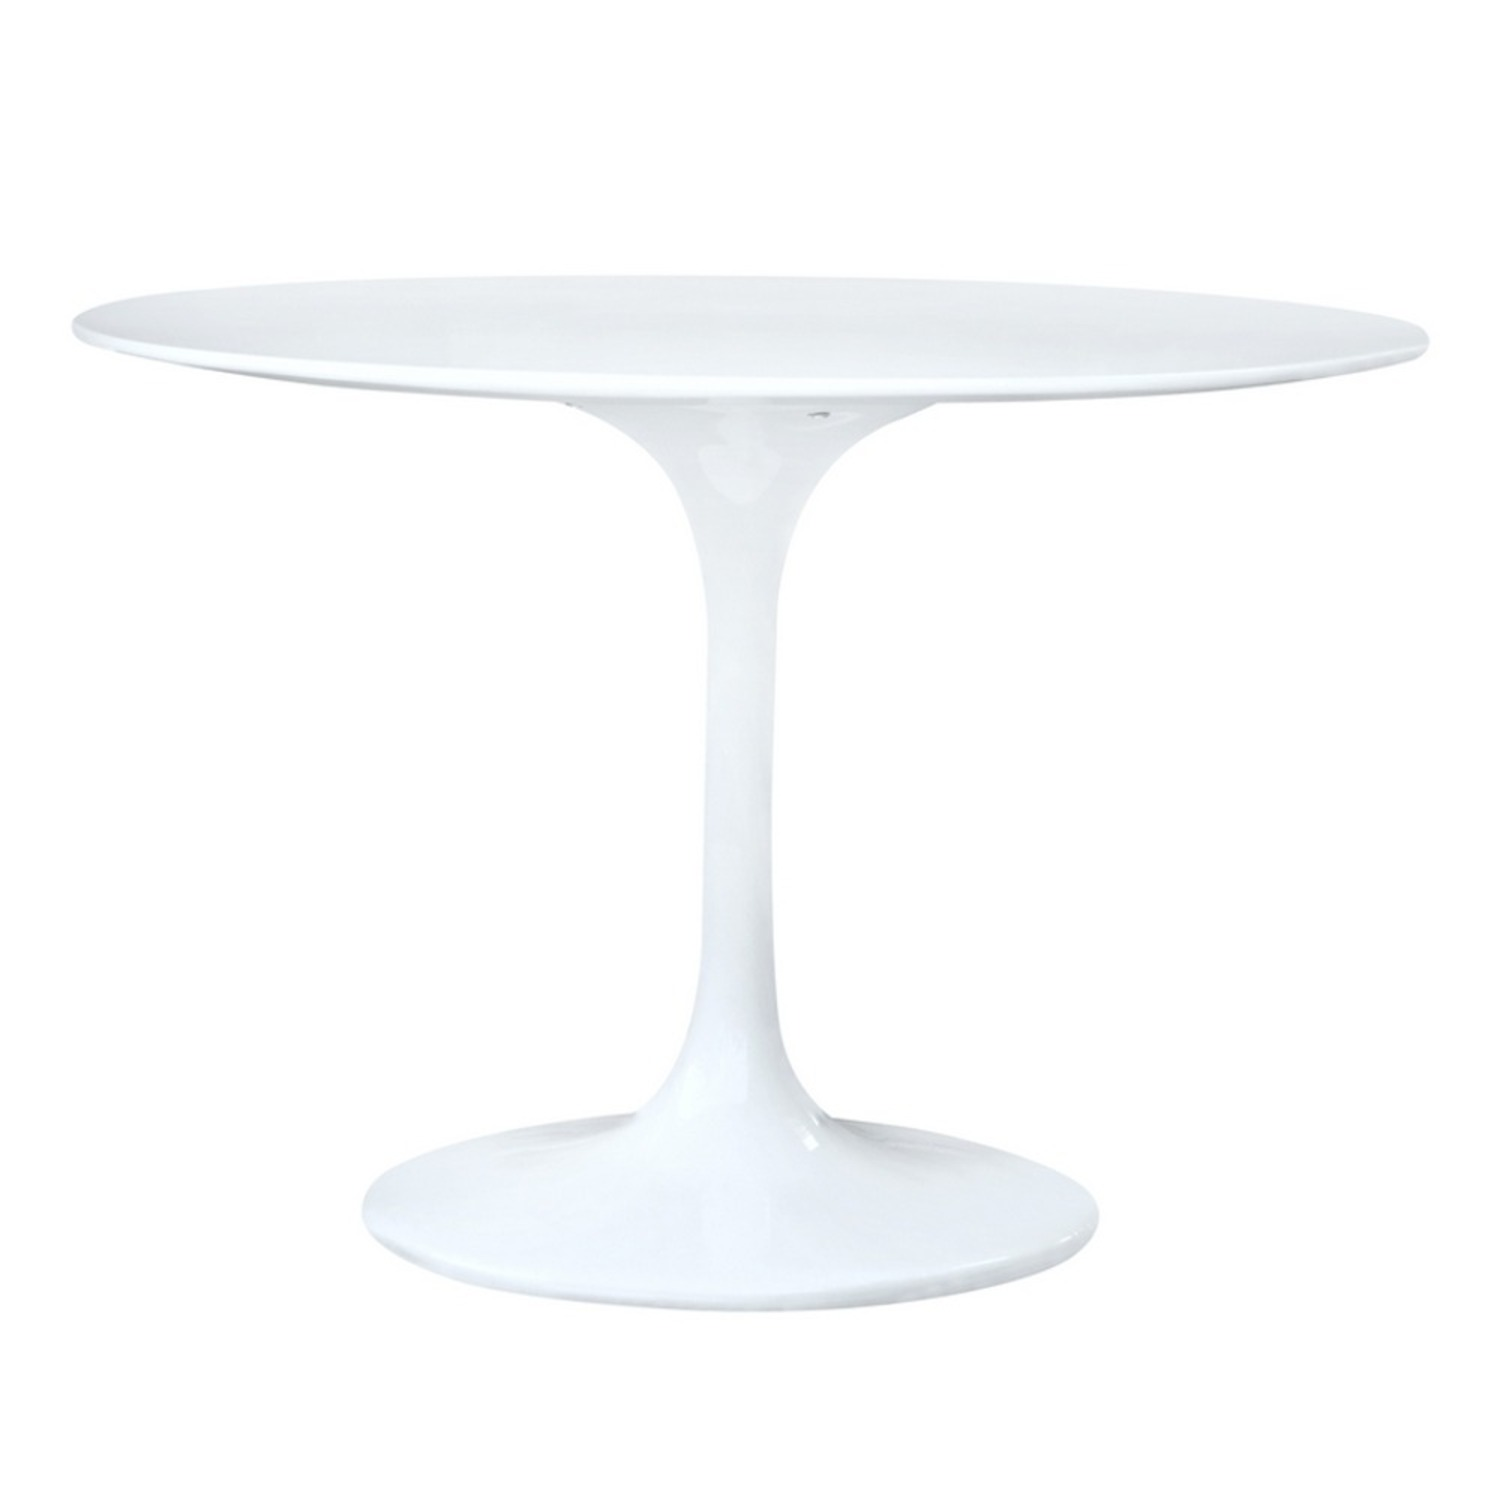 Tulip Style Dining Table In White Fiberglass - image-2